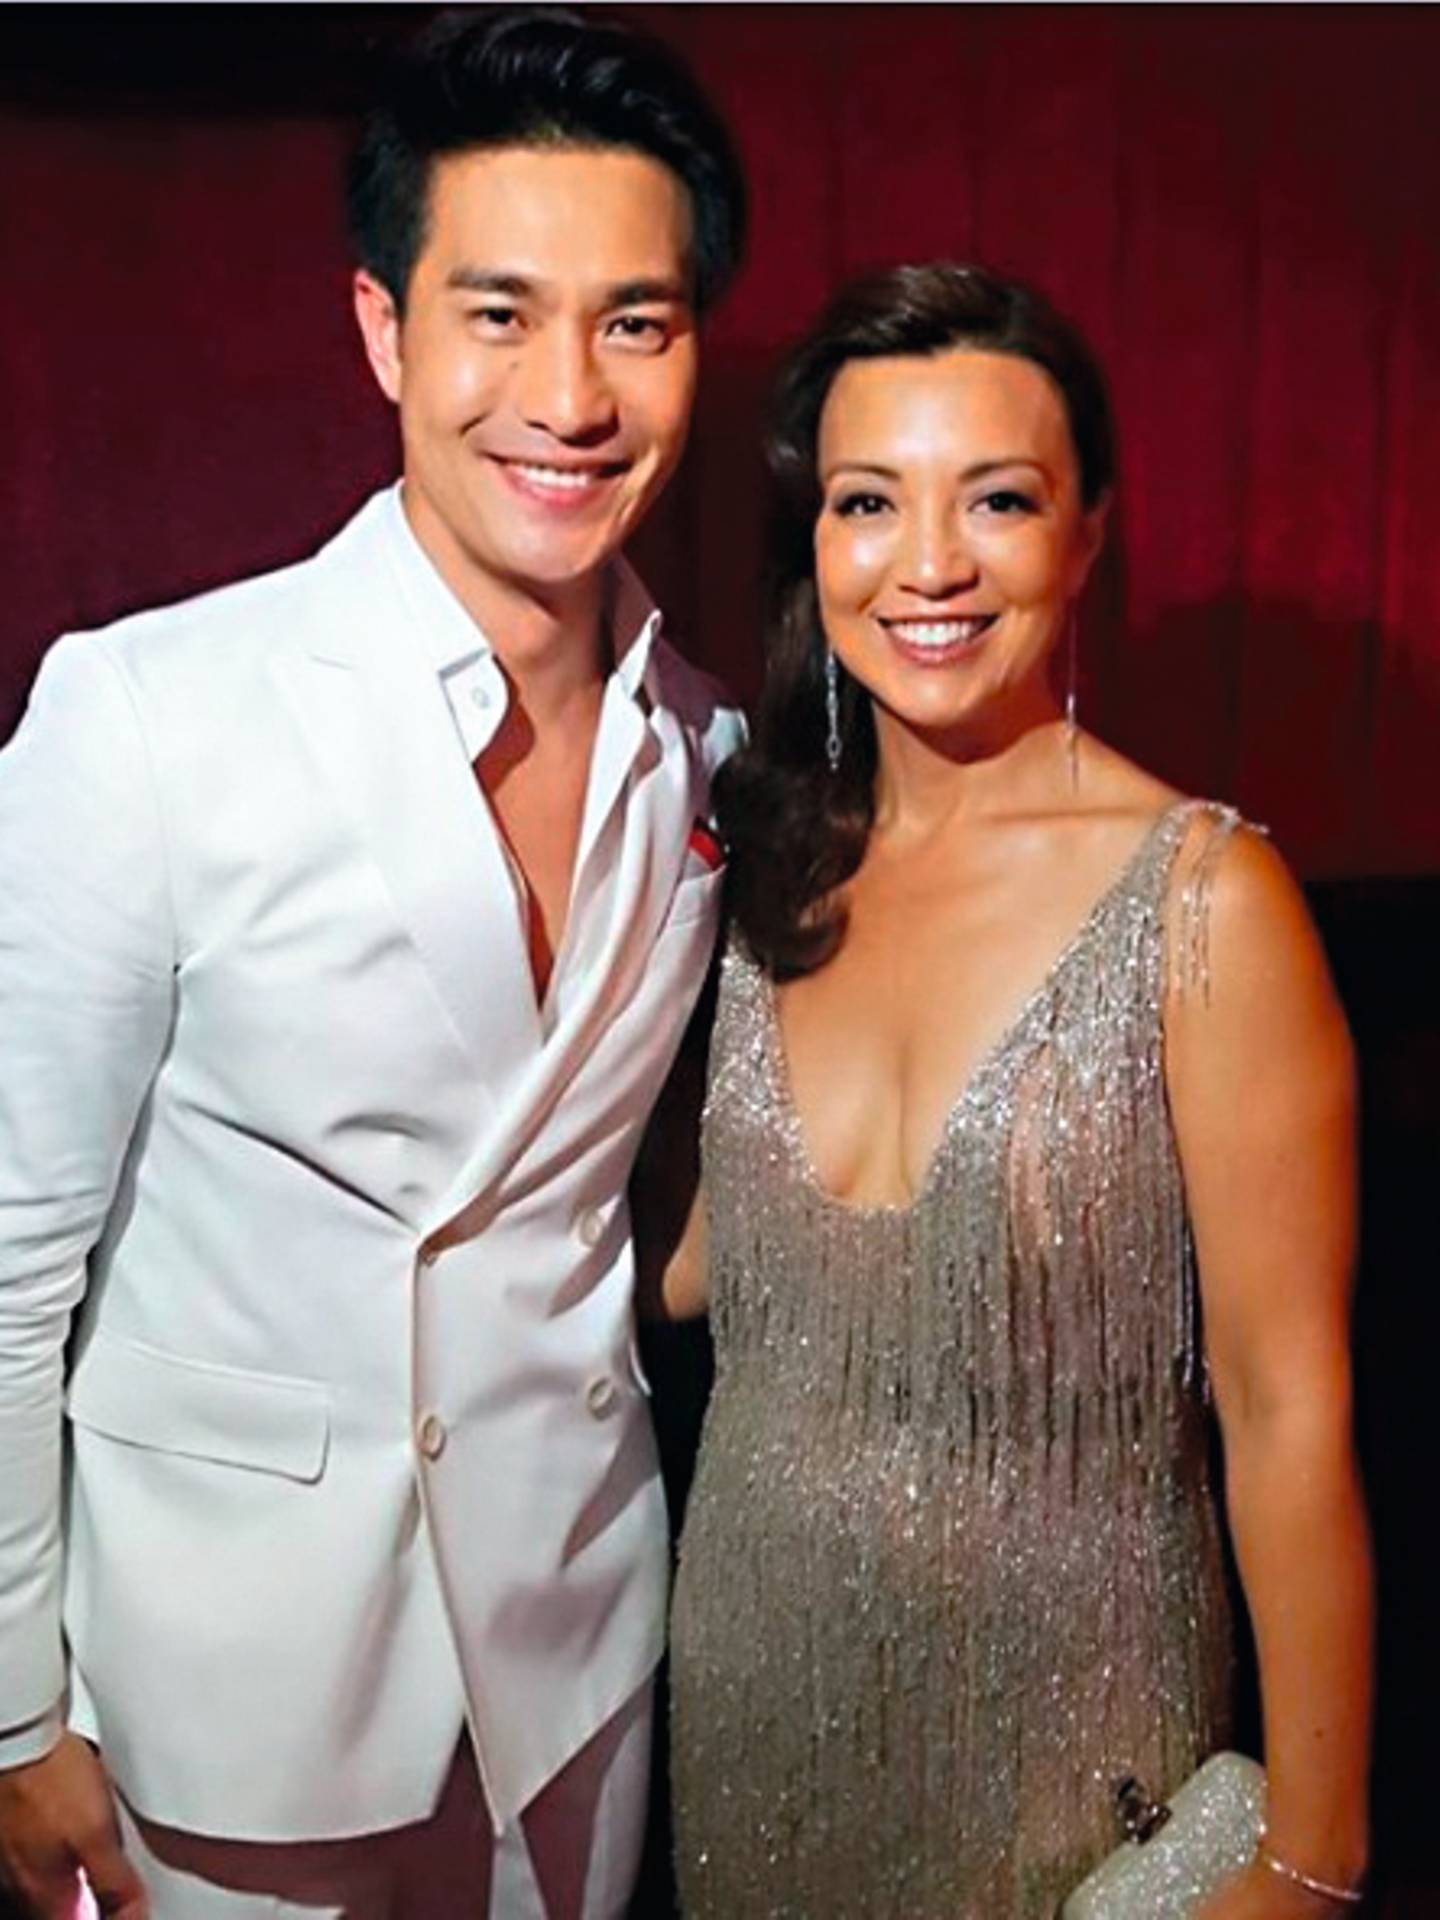 Pierre Png On How Nervous He Was On The Crazy Rich Asians.